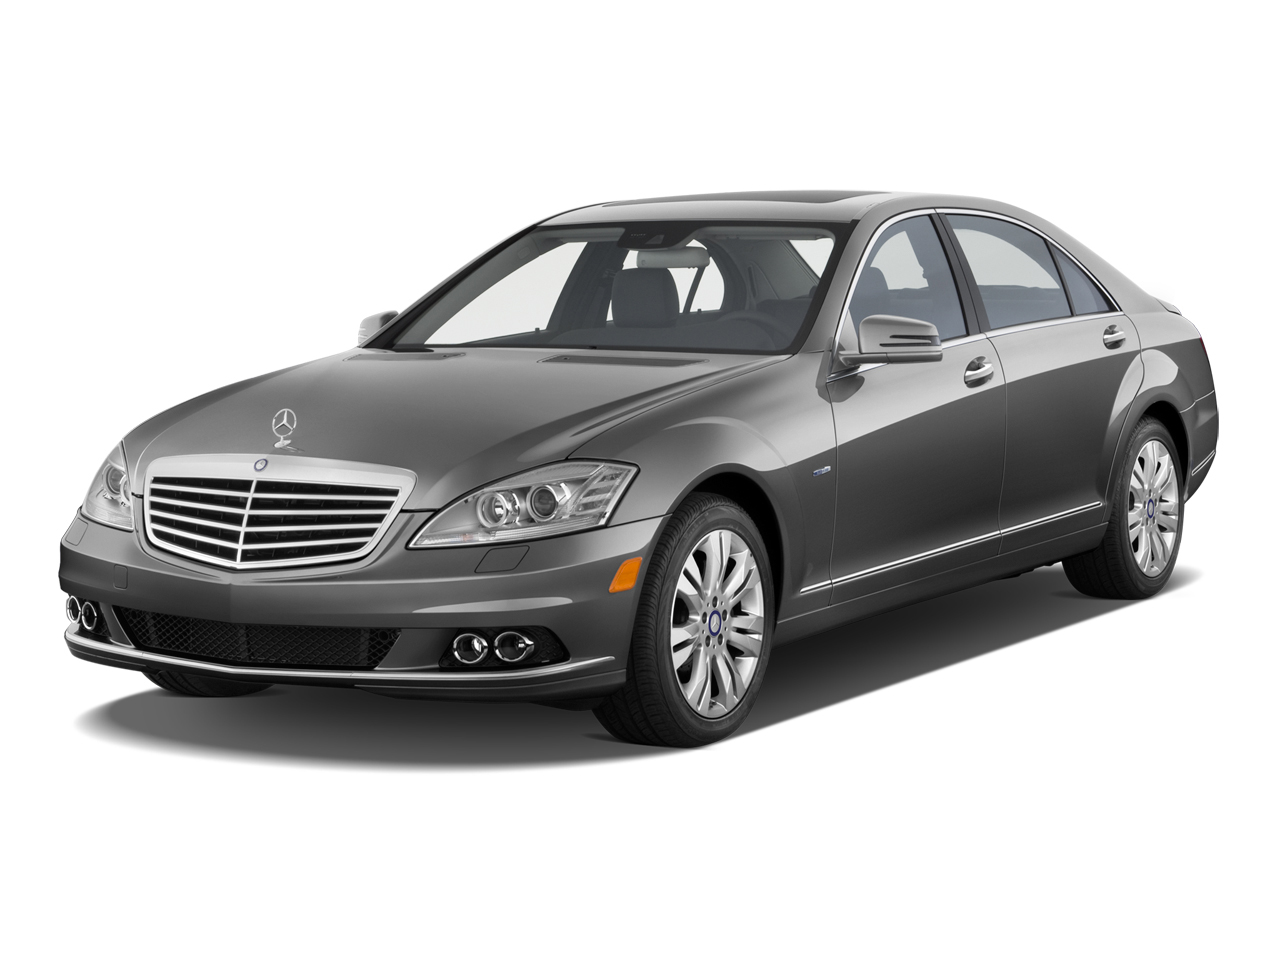 2012 mercedes benz s class review ratings specs prices for Mercedes benz s class 2012 price